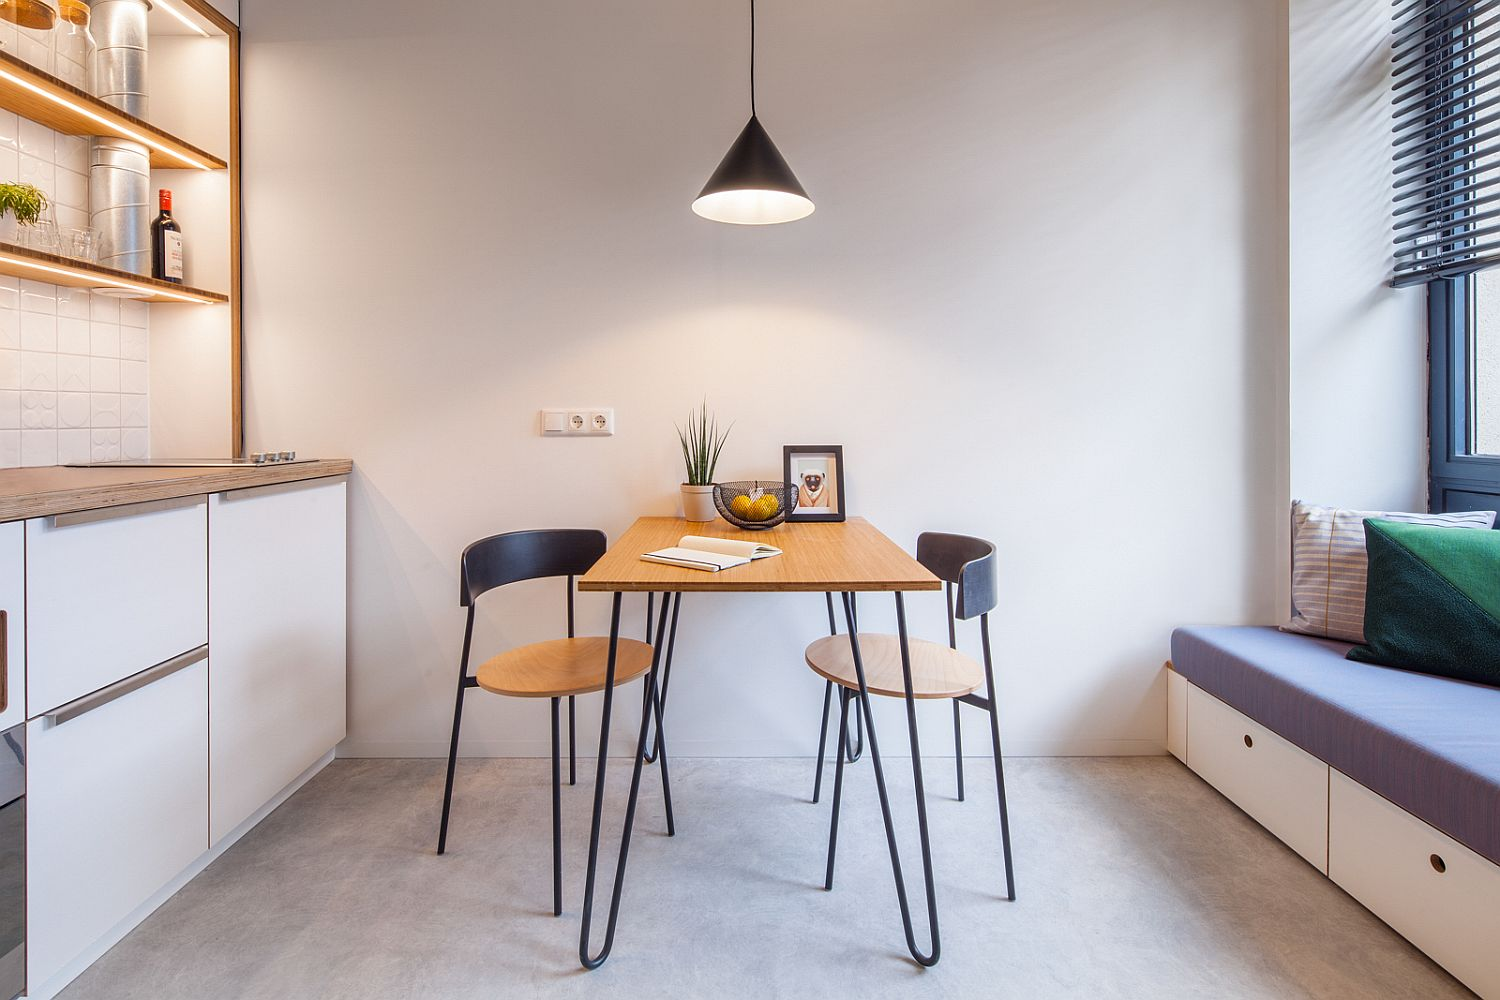 Cool 25 Tiny Apartment Dining Rooms That Save Space And Multitask Interior Design Ideas Tzicisoteloinfo